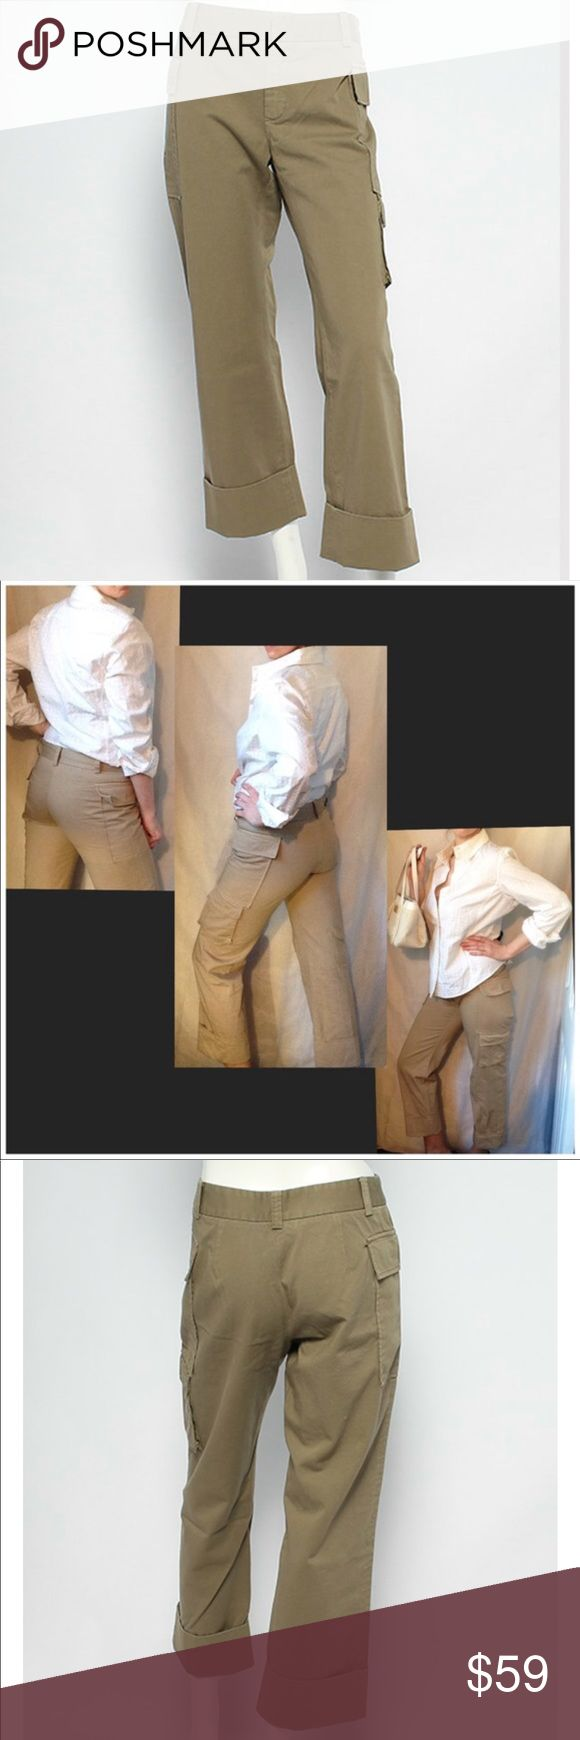 """Boy by Band of Outsiders Cargo Pant Khaki cargo pants from Boy by Band of Outsiders. Designer size 4. 17"""" waist, 30"""" inseam. Exposed outer cargo pockets on sides of hips. Never worn, no tags. Band Of Outsiders Pants"""